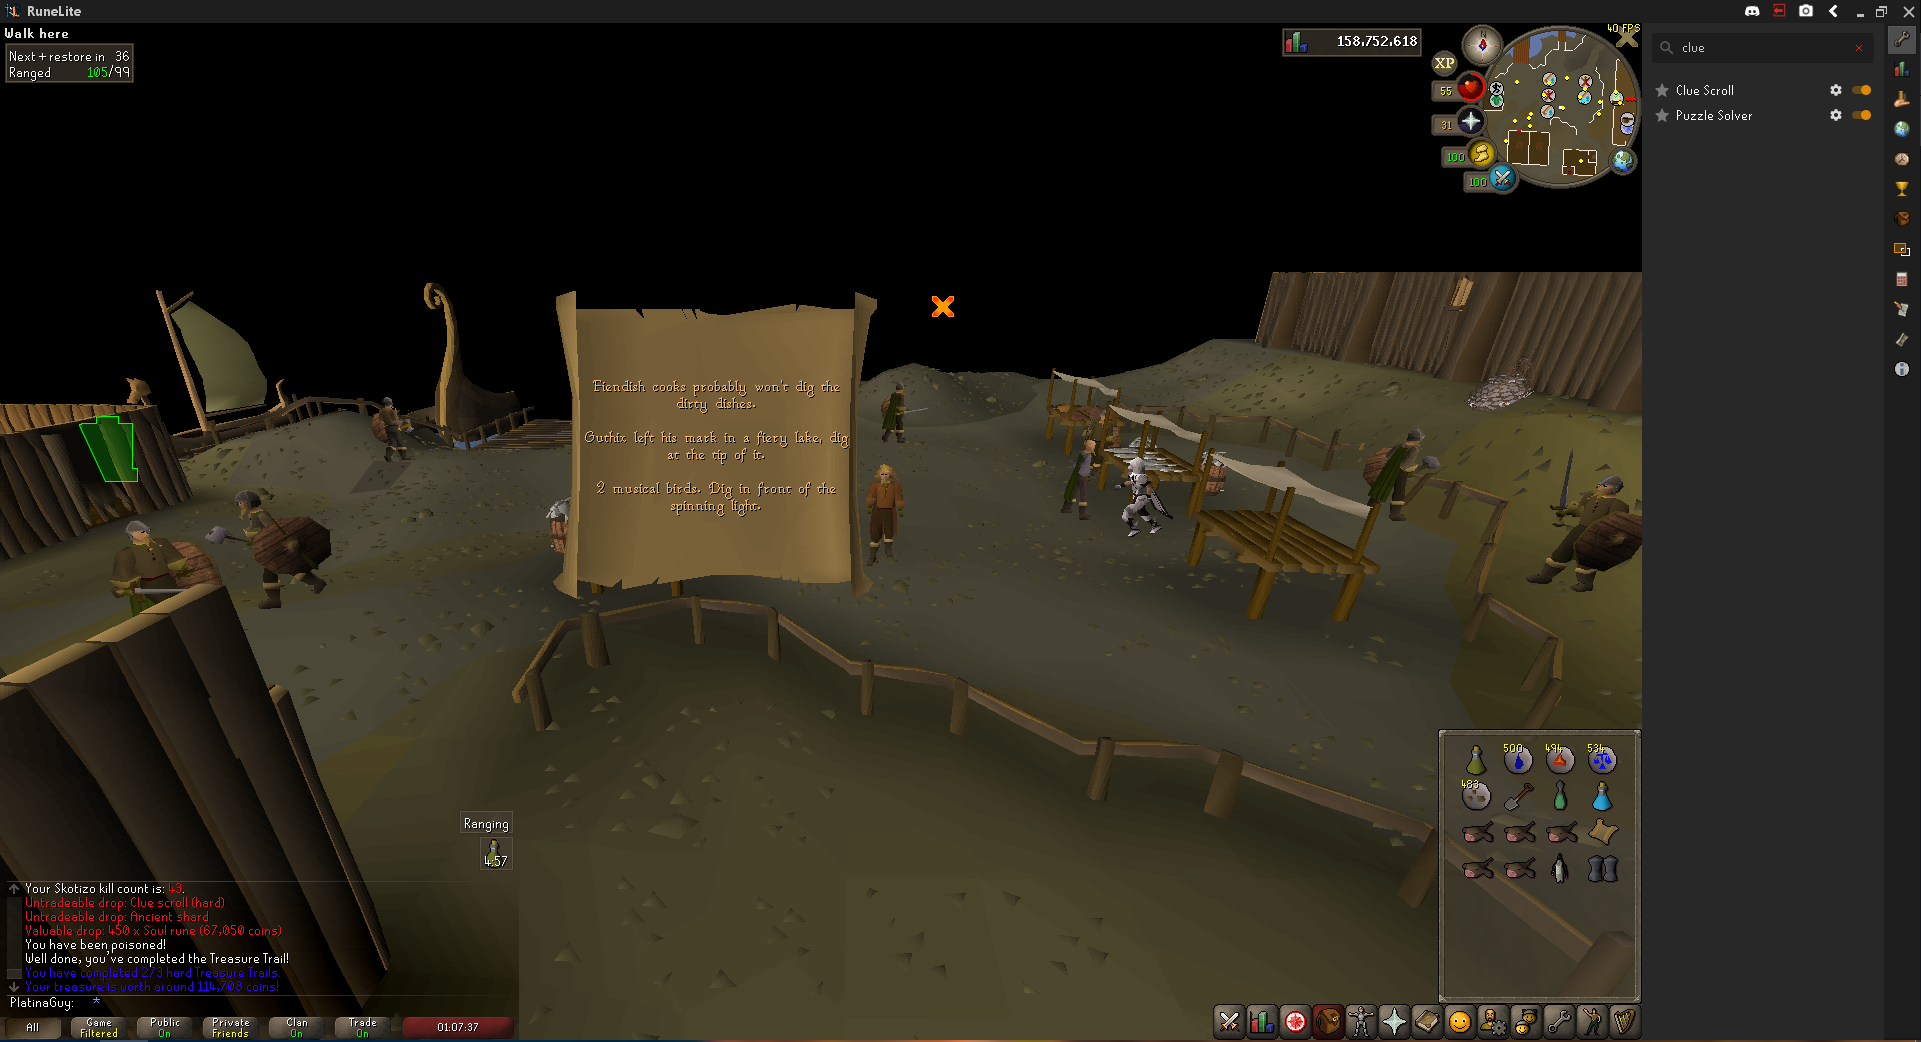 Master clue 3 step clue helper not showing · Issue #5968